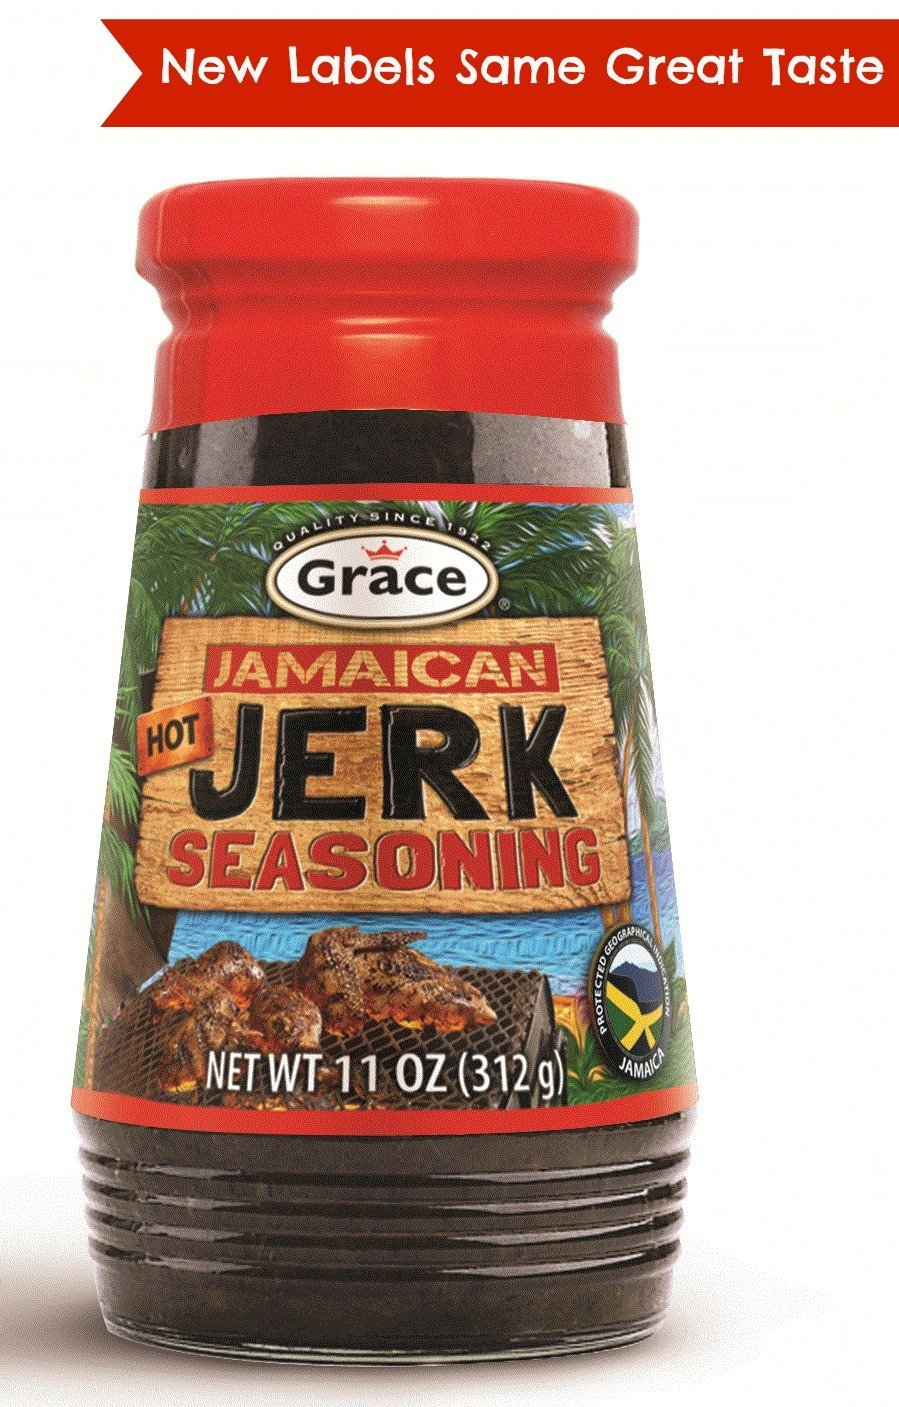 Grace Jerk Seasoning - Hot - 1 Bottle 10 oz - Spicy Authentic Jamaican Jerk Sauce - Caribbean Marinade Rub for Chicken, Pork, Fish, Vegetables, Steak, Tofu and More - Bonus Jerk Cooking Recipe eBook